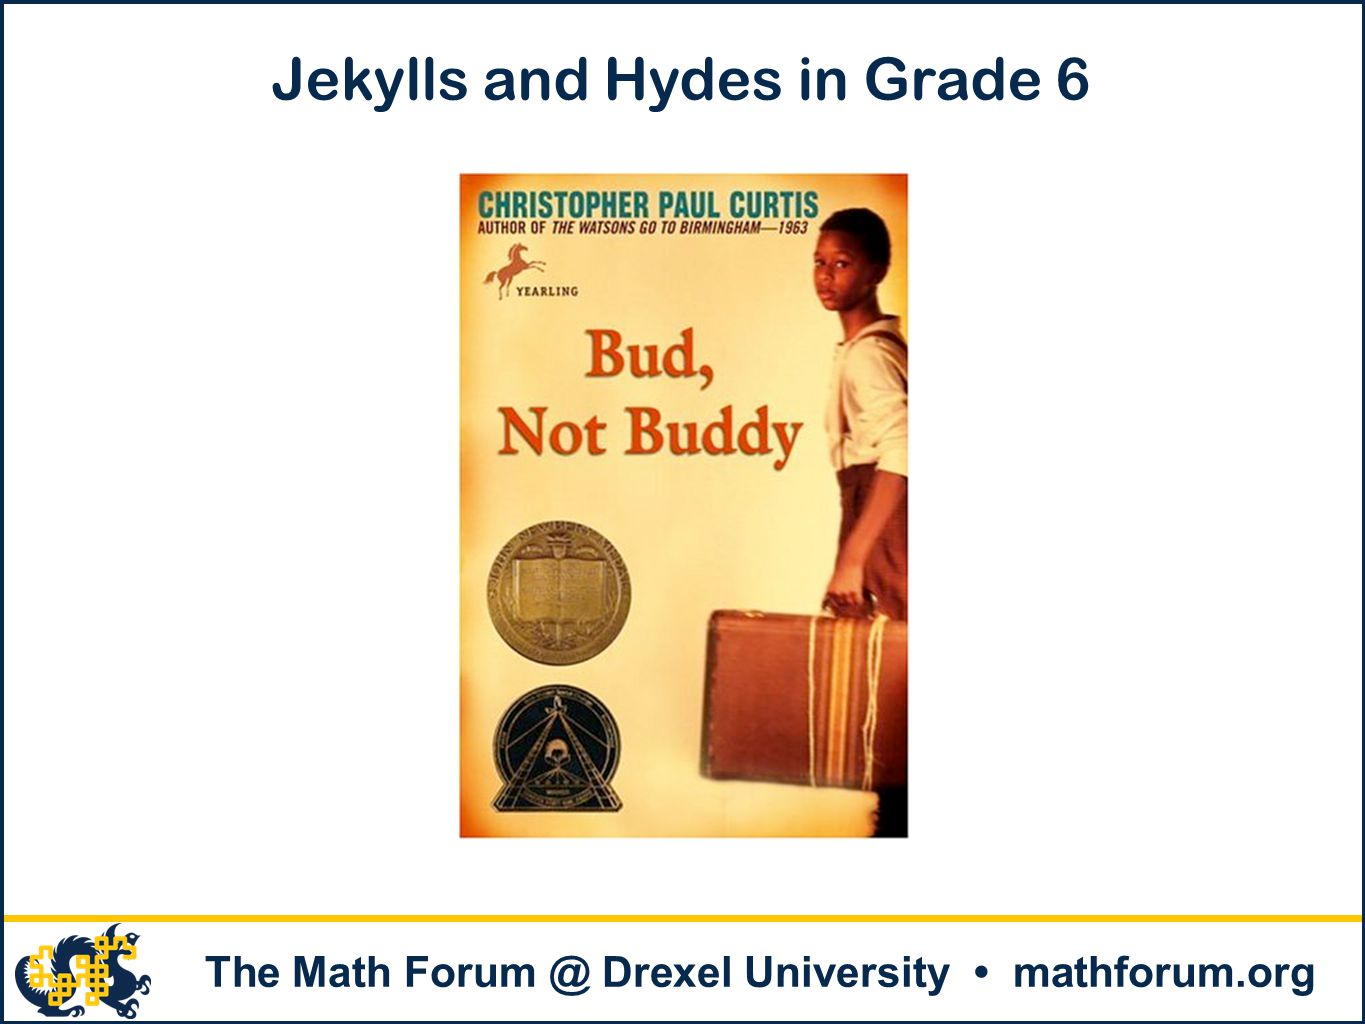 Jekylls and Hydes in Grade 6